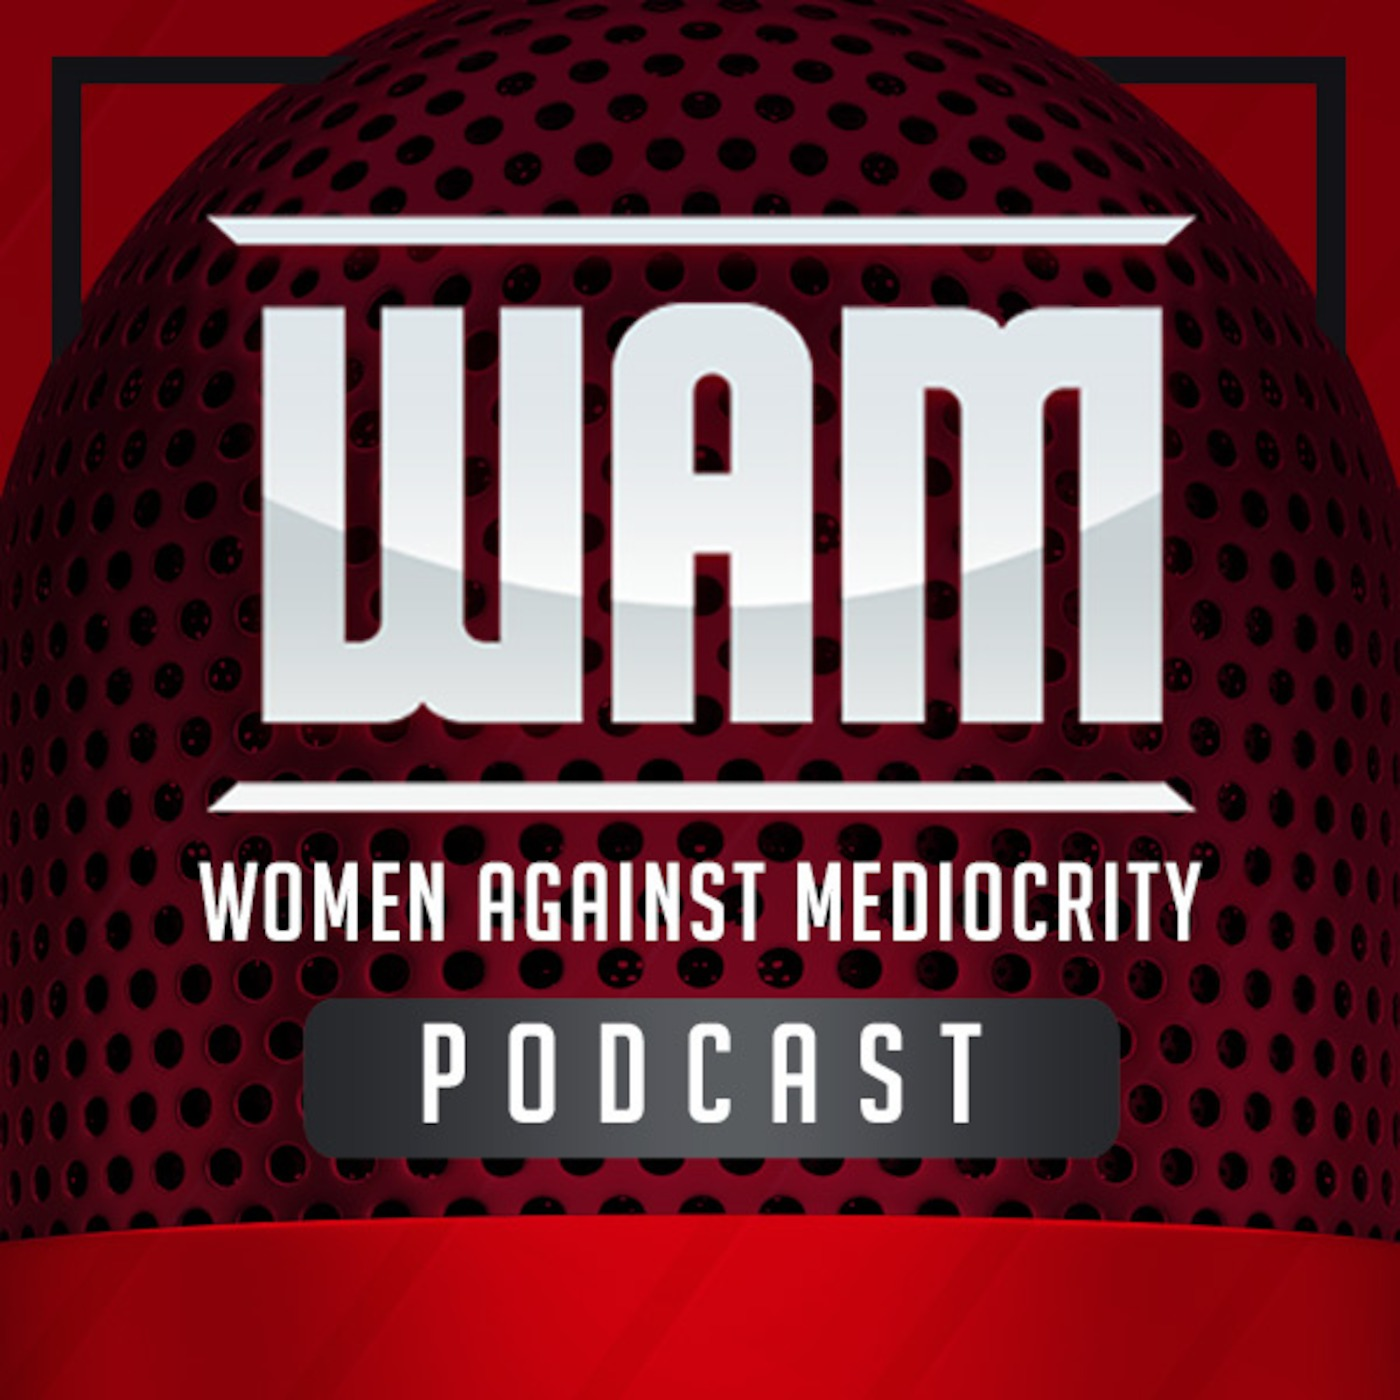 Women Against Mediocrity